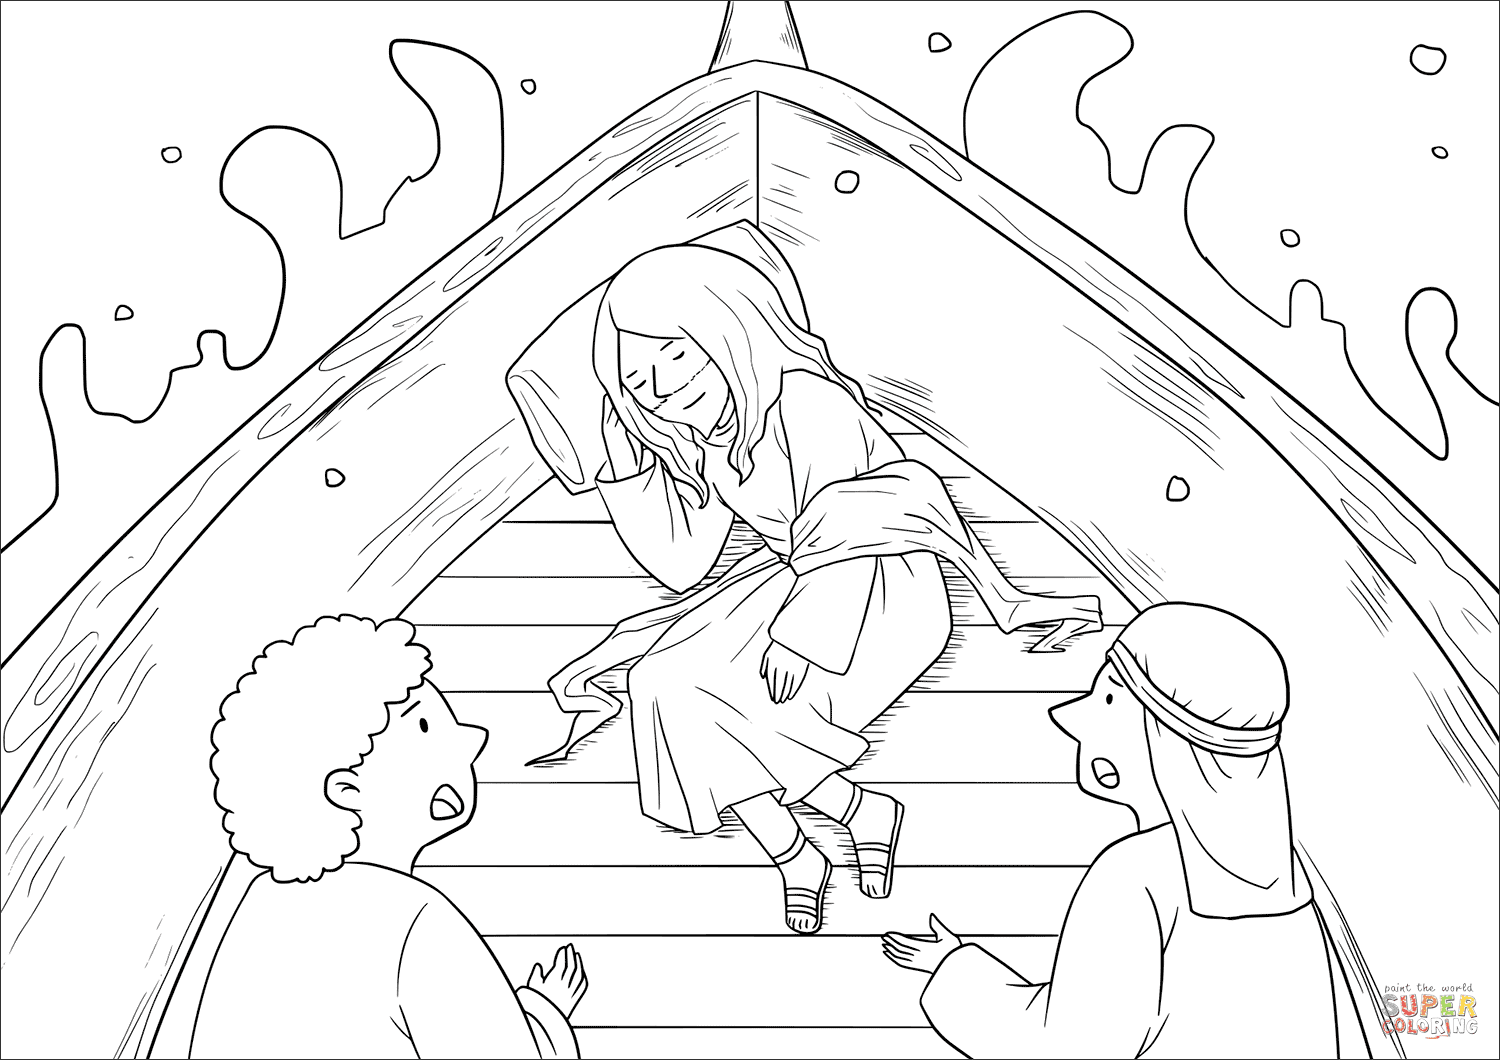 free coloring pages of jesus calming the storm | Fresh Free Coloring Pages Of Jesus Calming the Storm ...